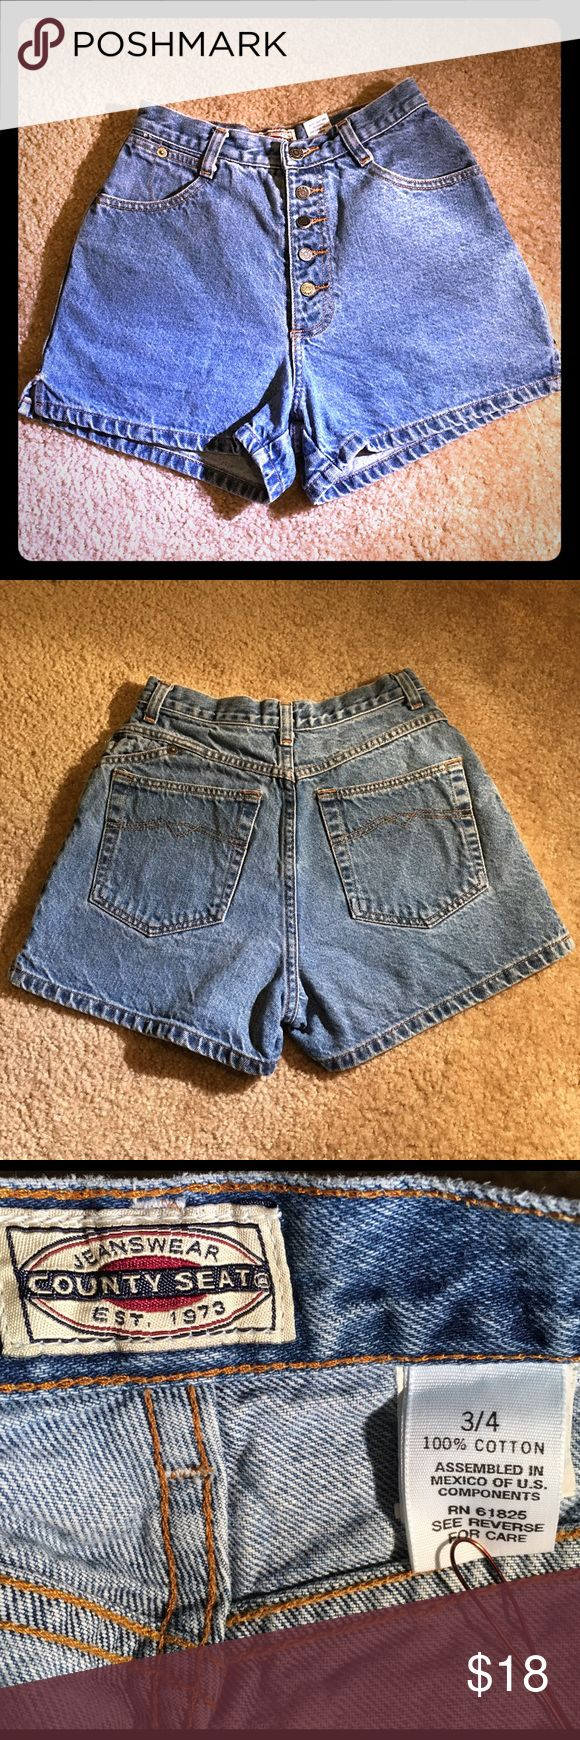 🌞🌻Vintage, COUNTY SEAT, High Wasted Button FLYS! 🌞🌻 Vintage,  County Seat, High Wasted Button FLY Shorts, Size 3/4! Sooooo Cute!🌞🌻  ♦️These Are in Perfect Vintage Condition, they are seriously ADORABLE, and Perfect for Summer.  ✔️No stains, Rips, or Damages   ✔️Classic Blue jean Wash  ✔️100% Cotton! No Stretch here!  Measurements:   Waist: 24 inches  Hips: 34 inches  Rise: 12 inches  Length (outer side seam) : 12 inches Vintage, County Seat Shorts Jean Shorts